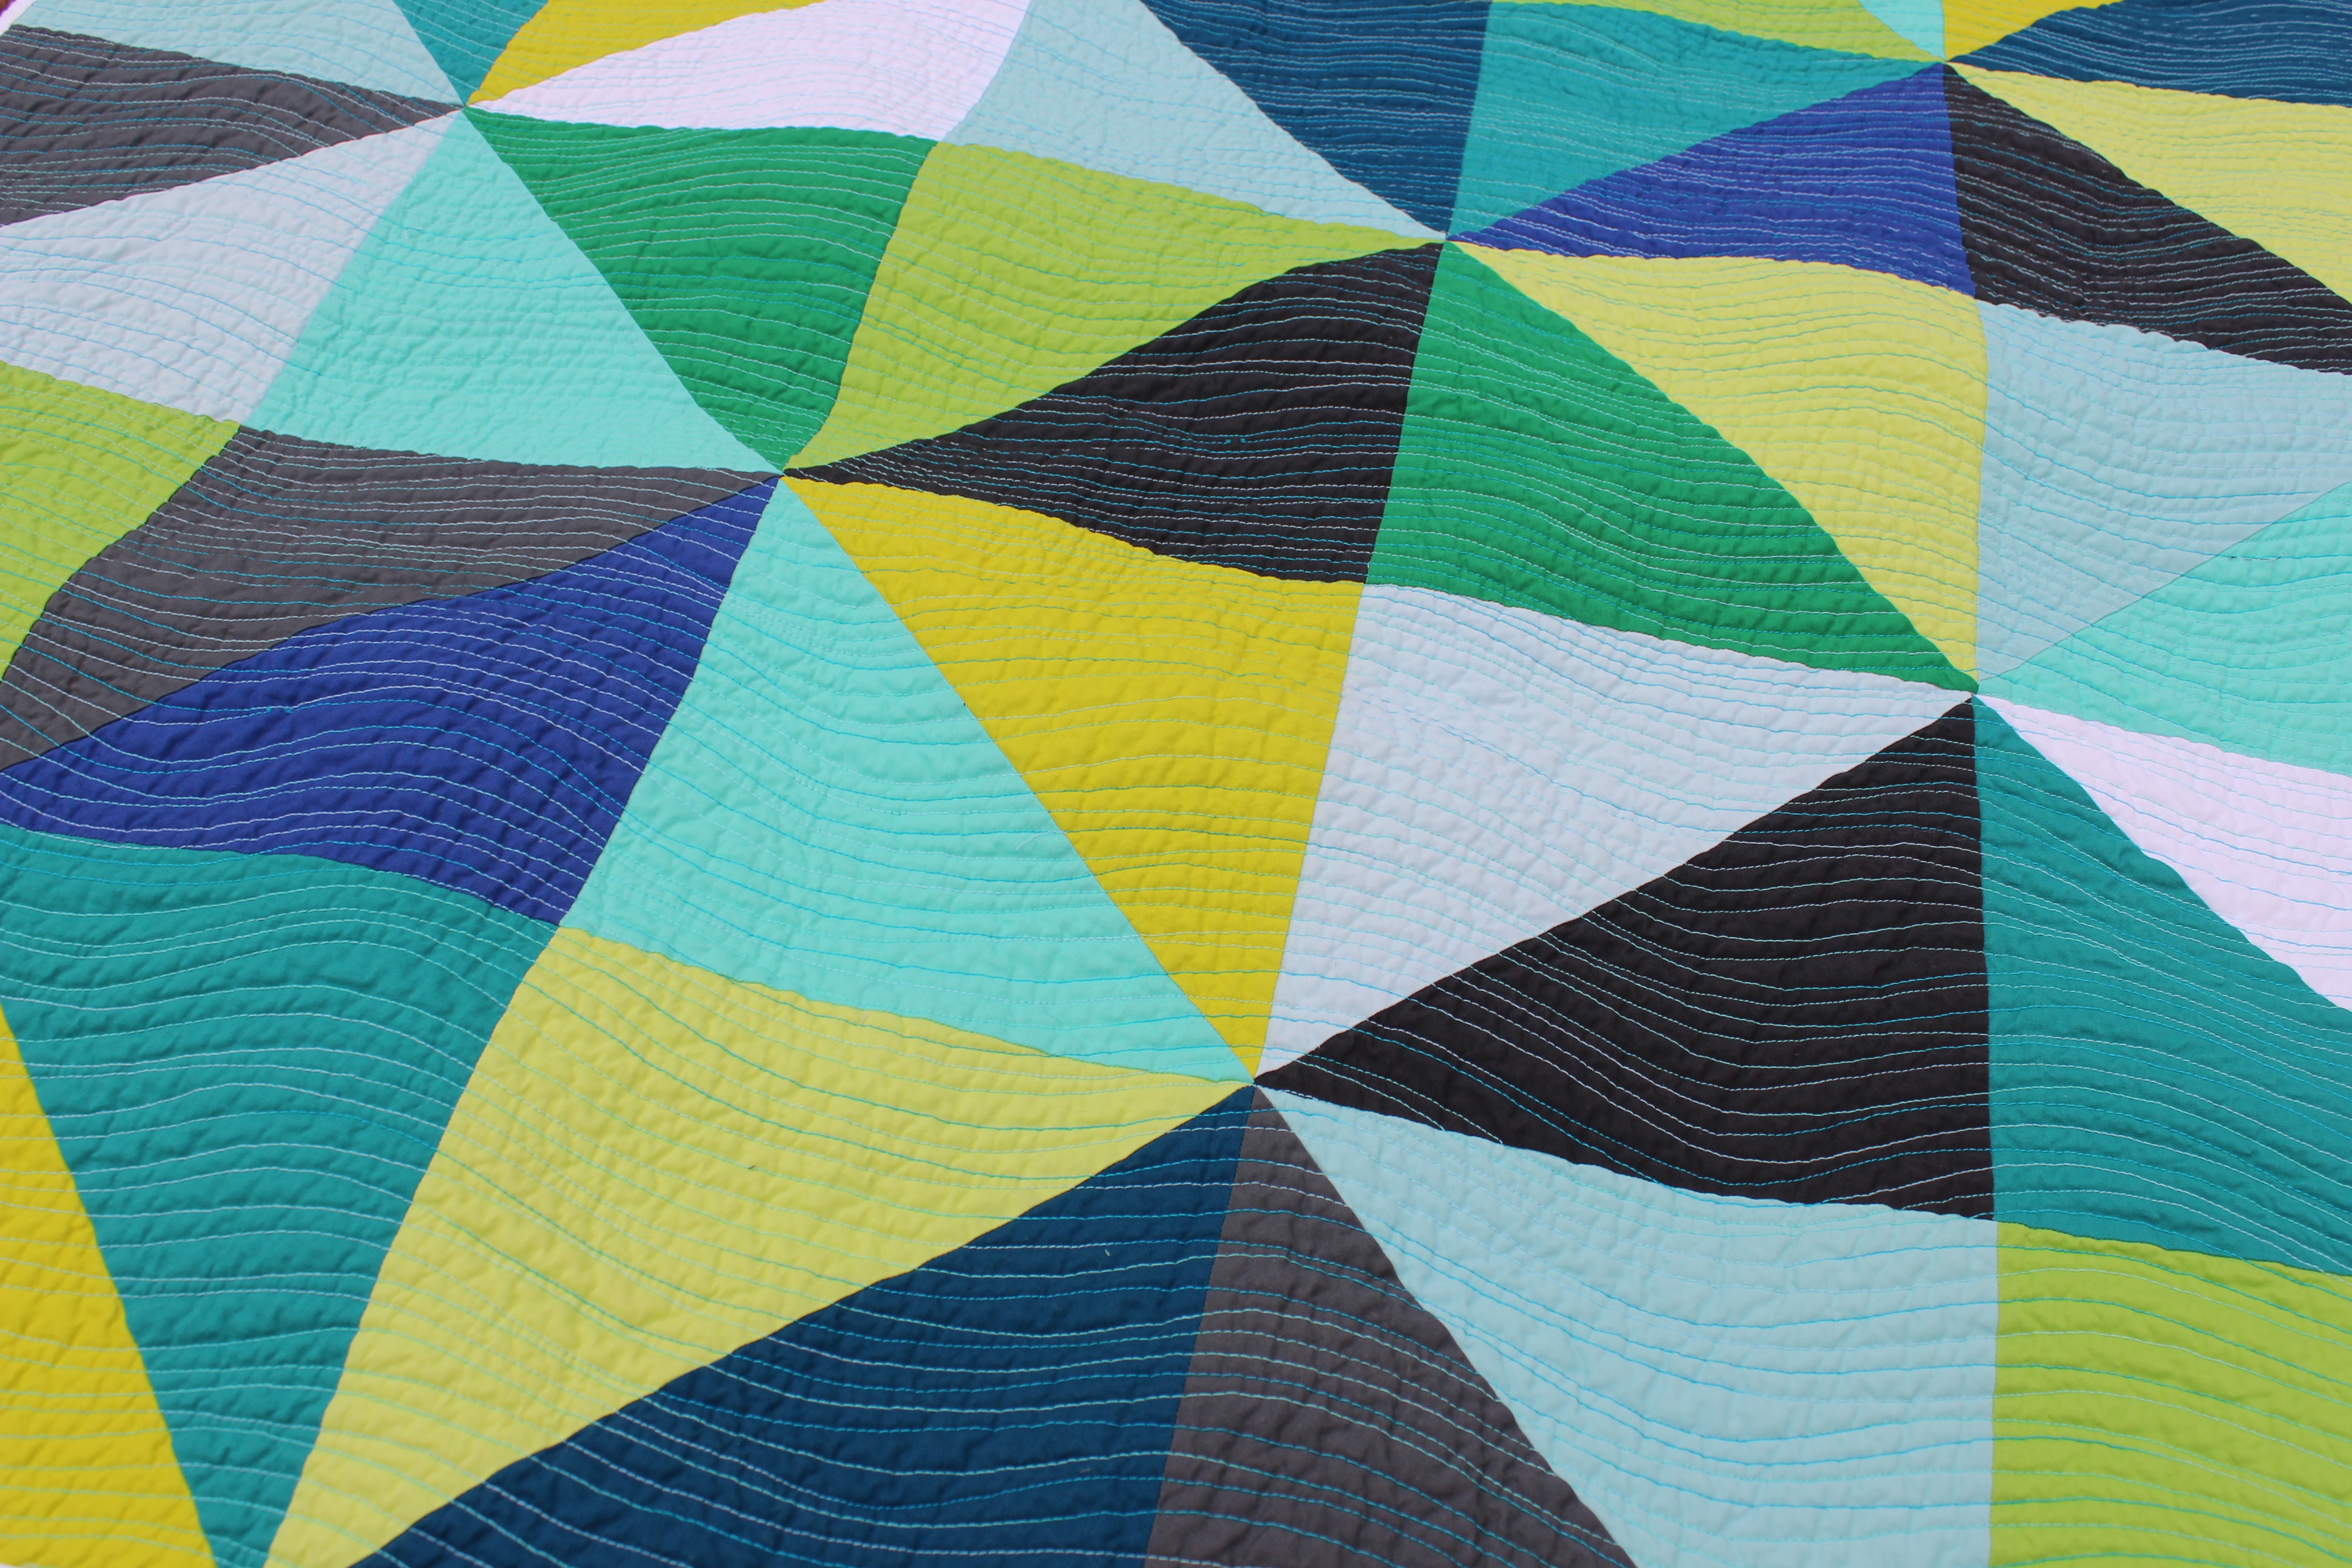 Line Art Quilt Pattern : Agf quilt block tour of makers color girl quilts by sharon mcconnell